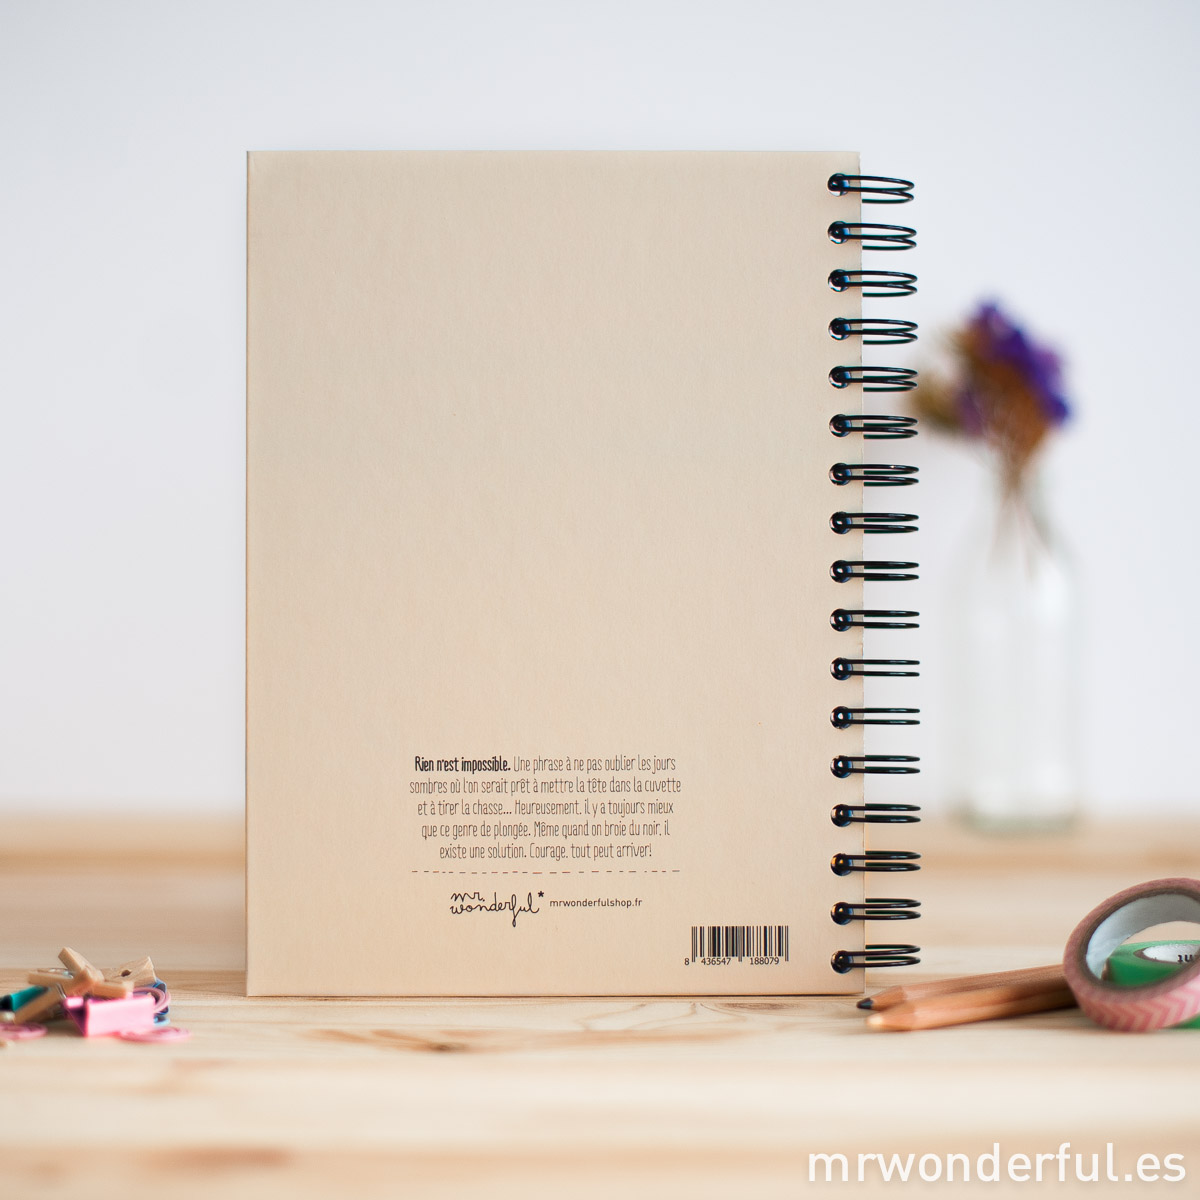 mrwonderful_lib22a_libreta-color_riennest-impossible-frances-2